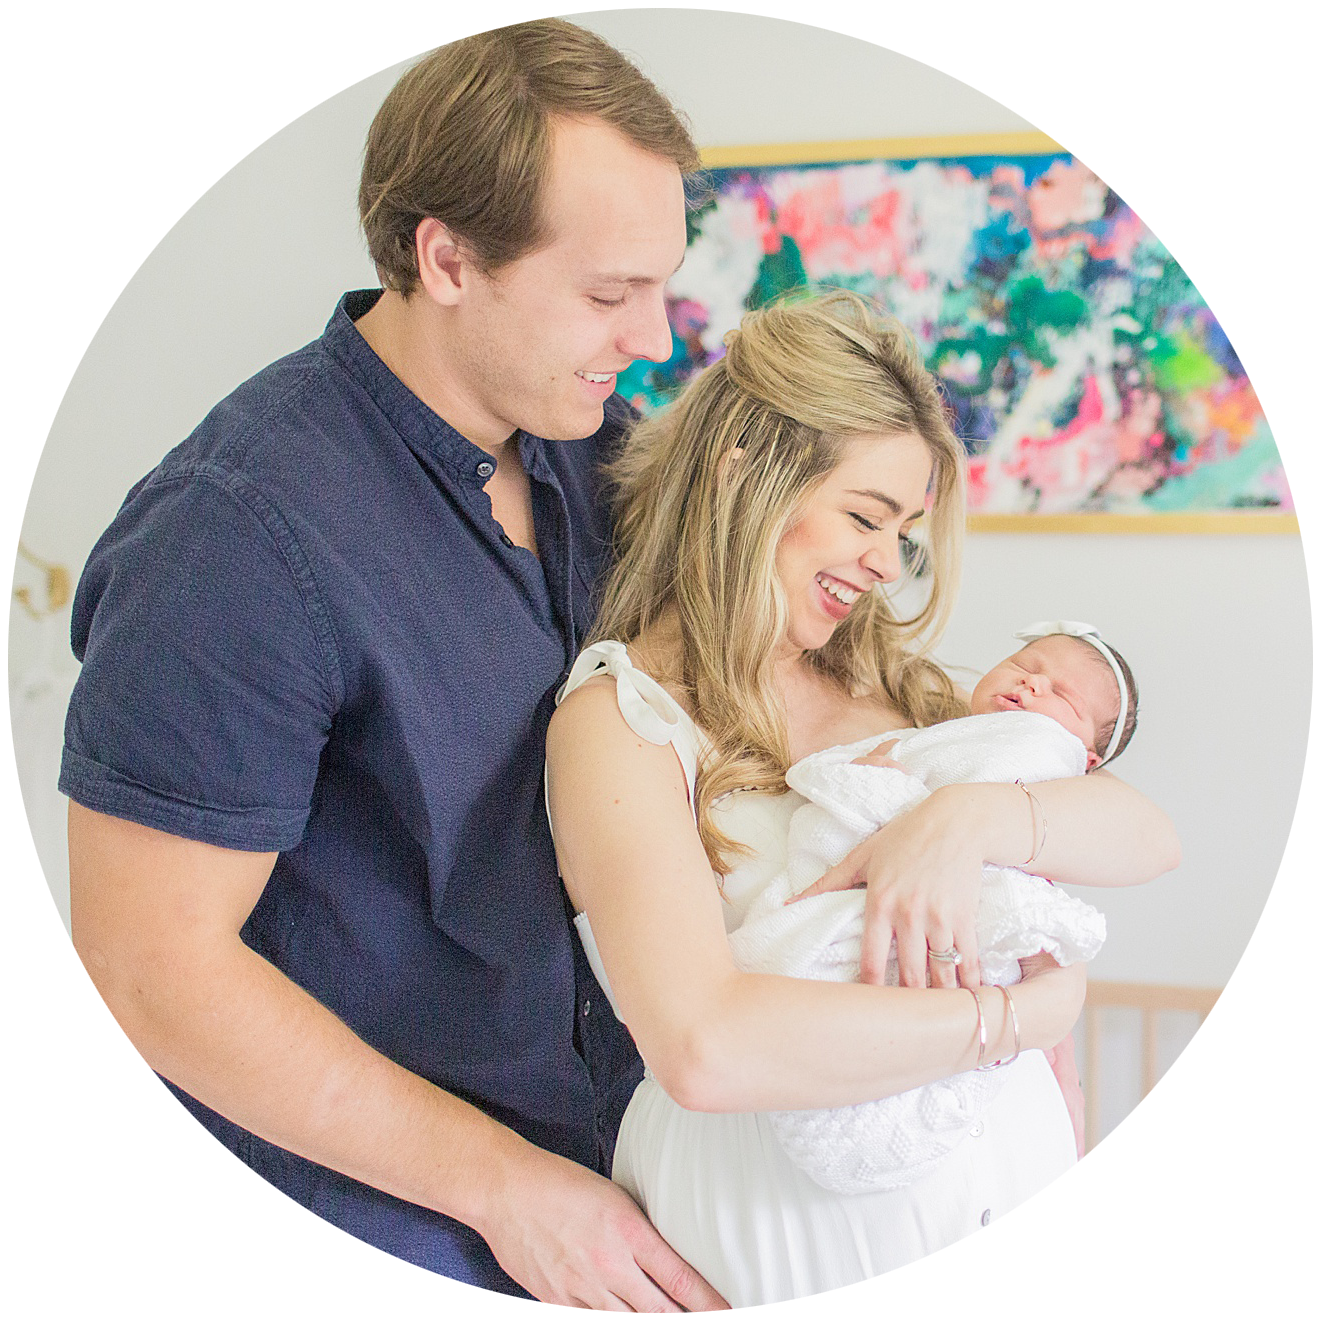 mississippi-family-photographer_0010.png